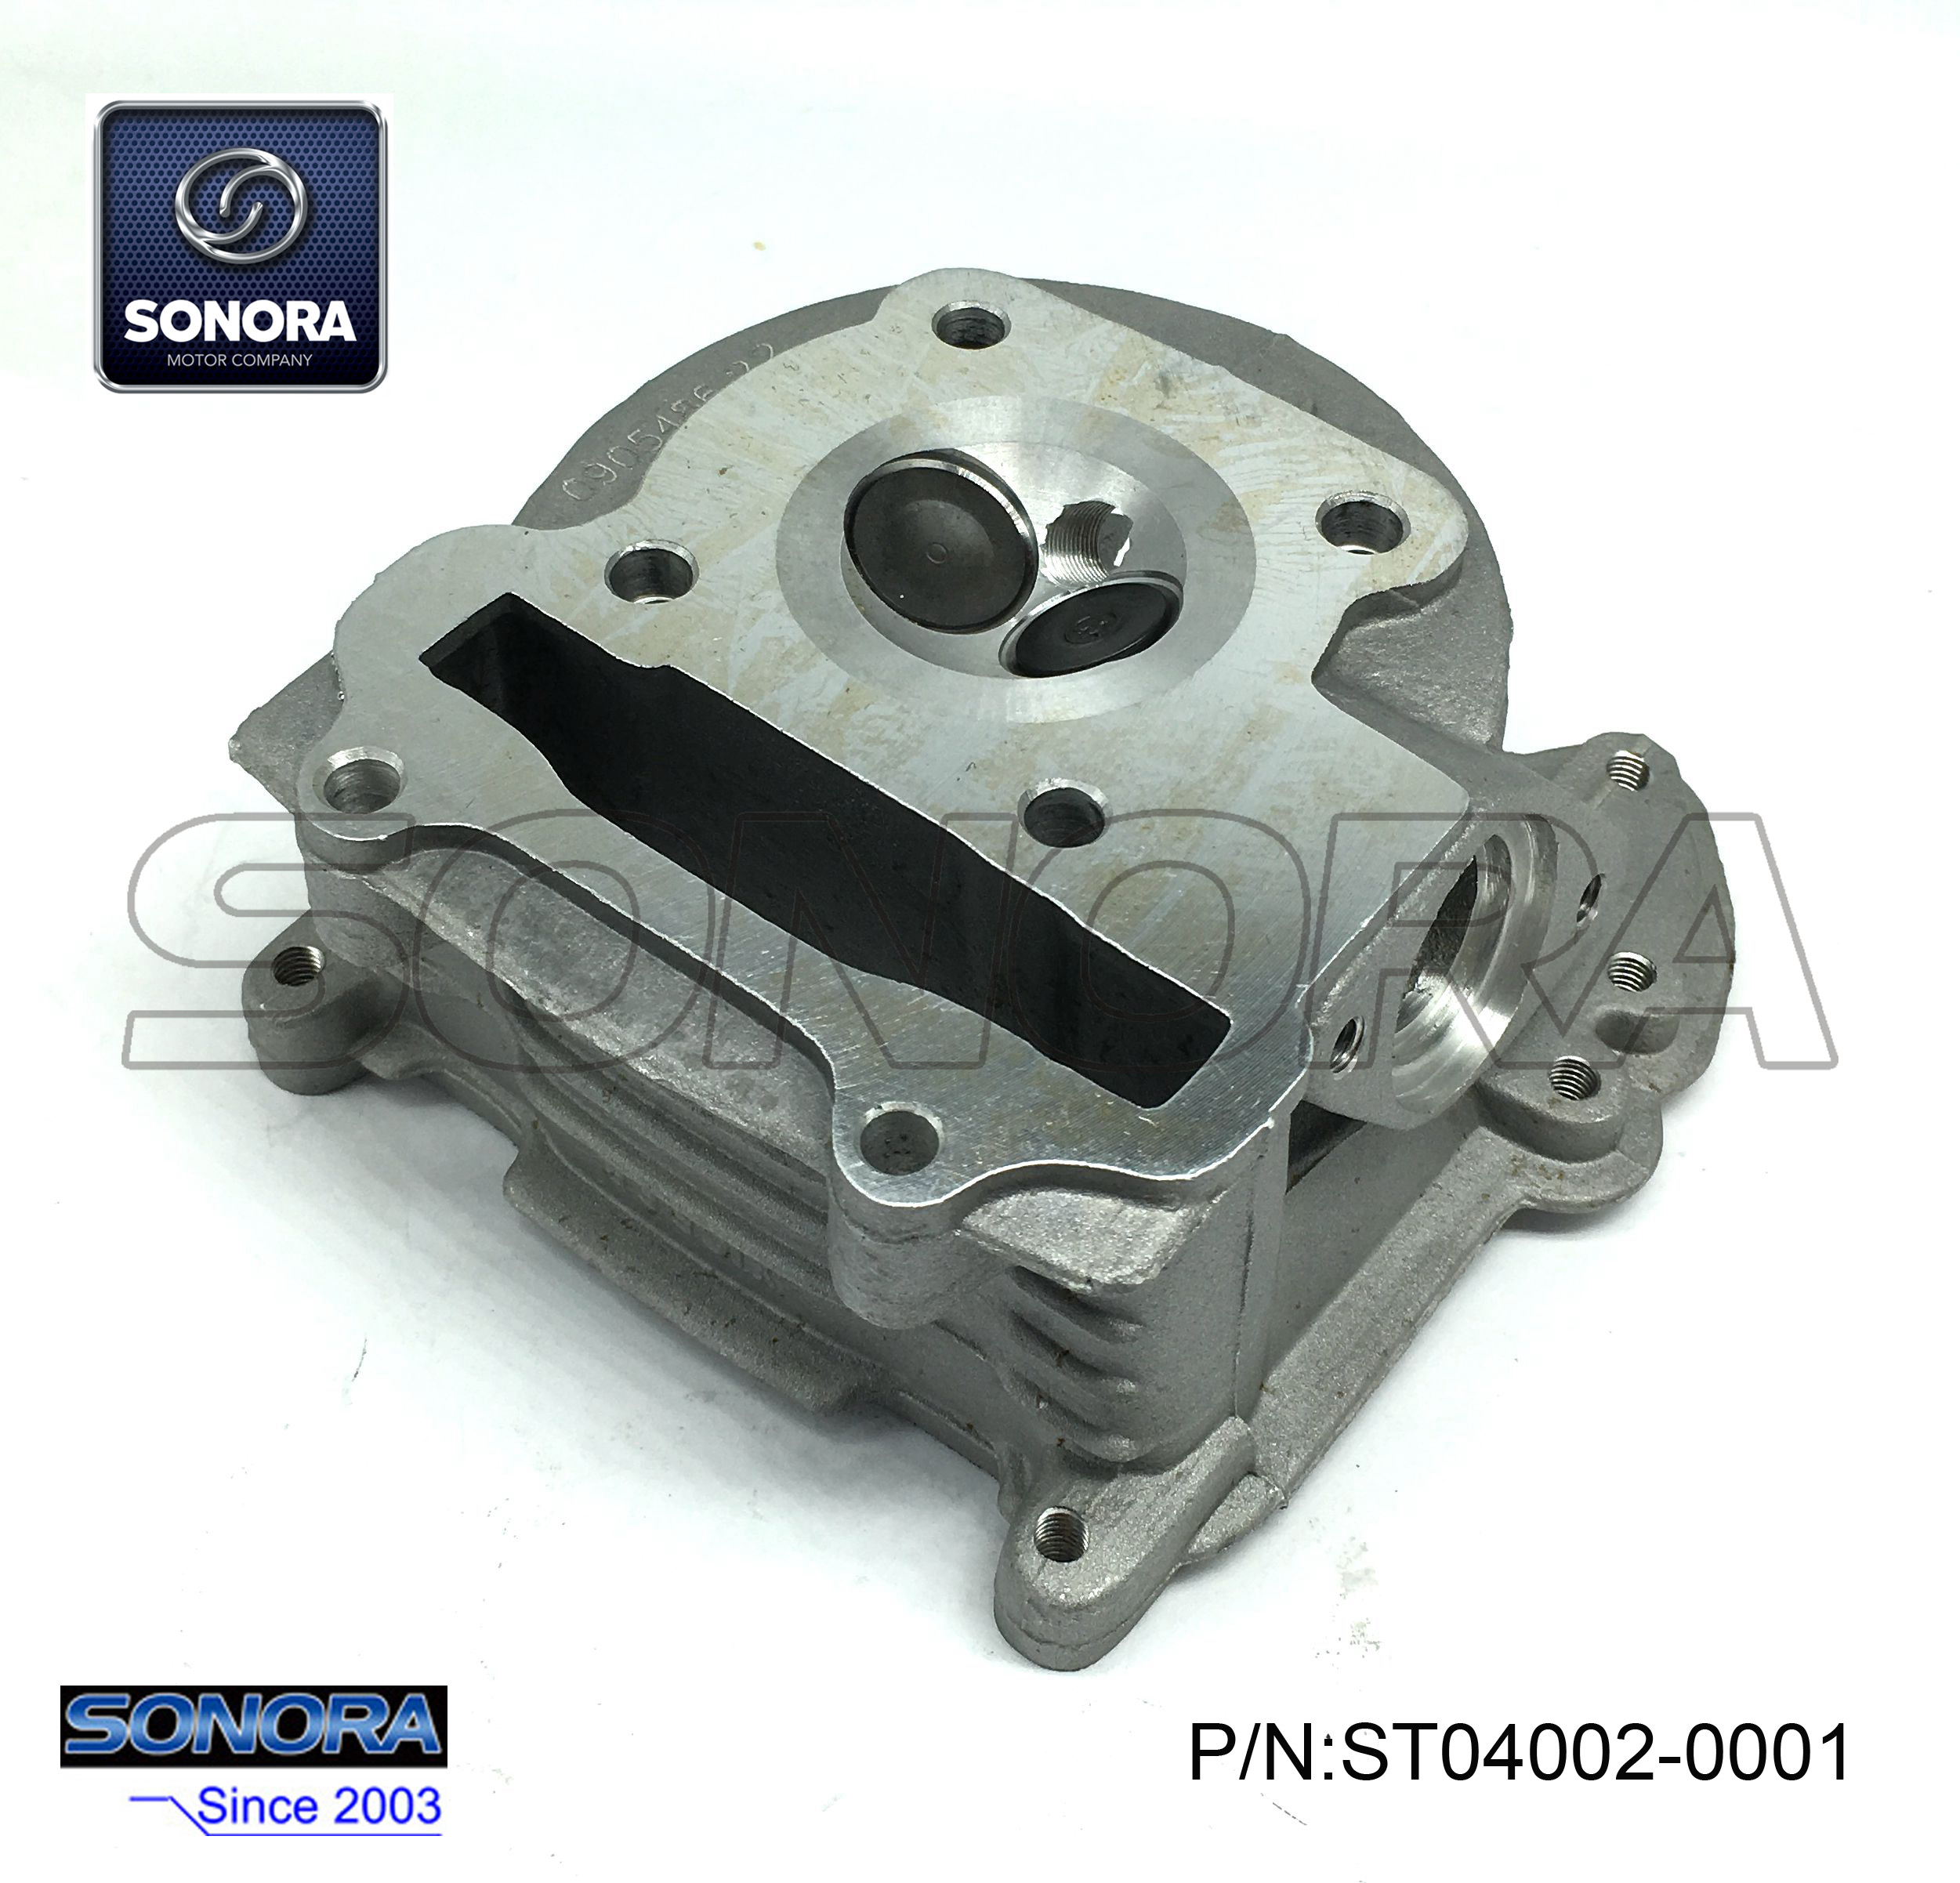 ST04002-0001 GY50 139QMAB Cylinder head with valve 47MM,with EGR